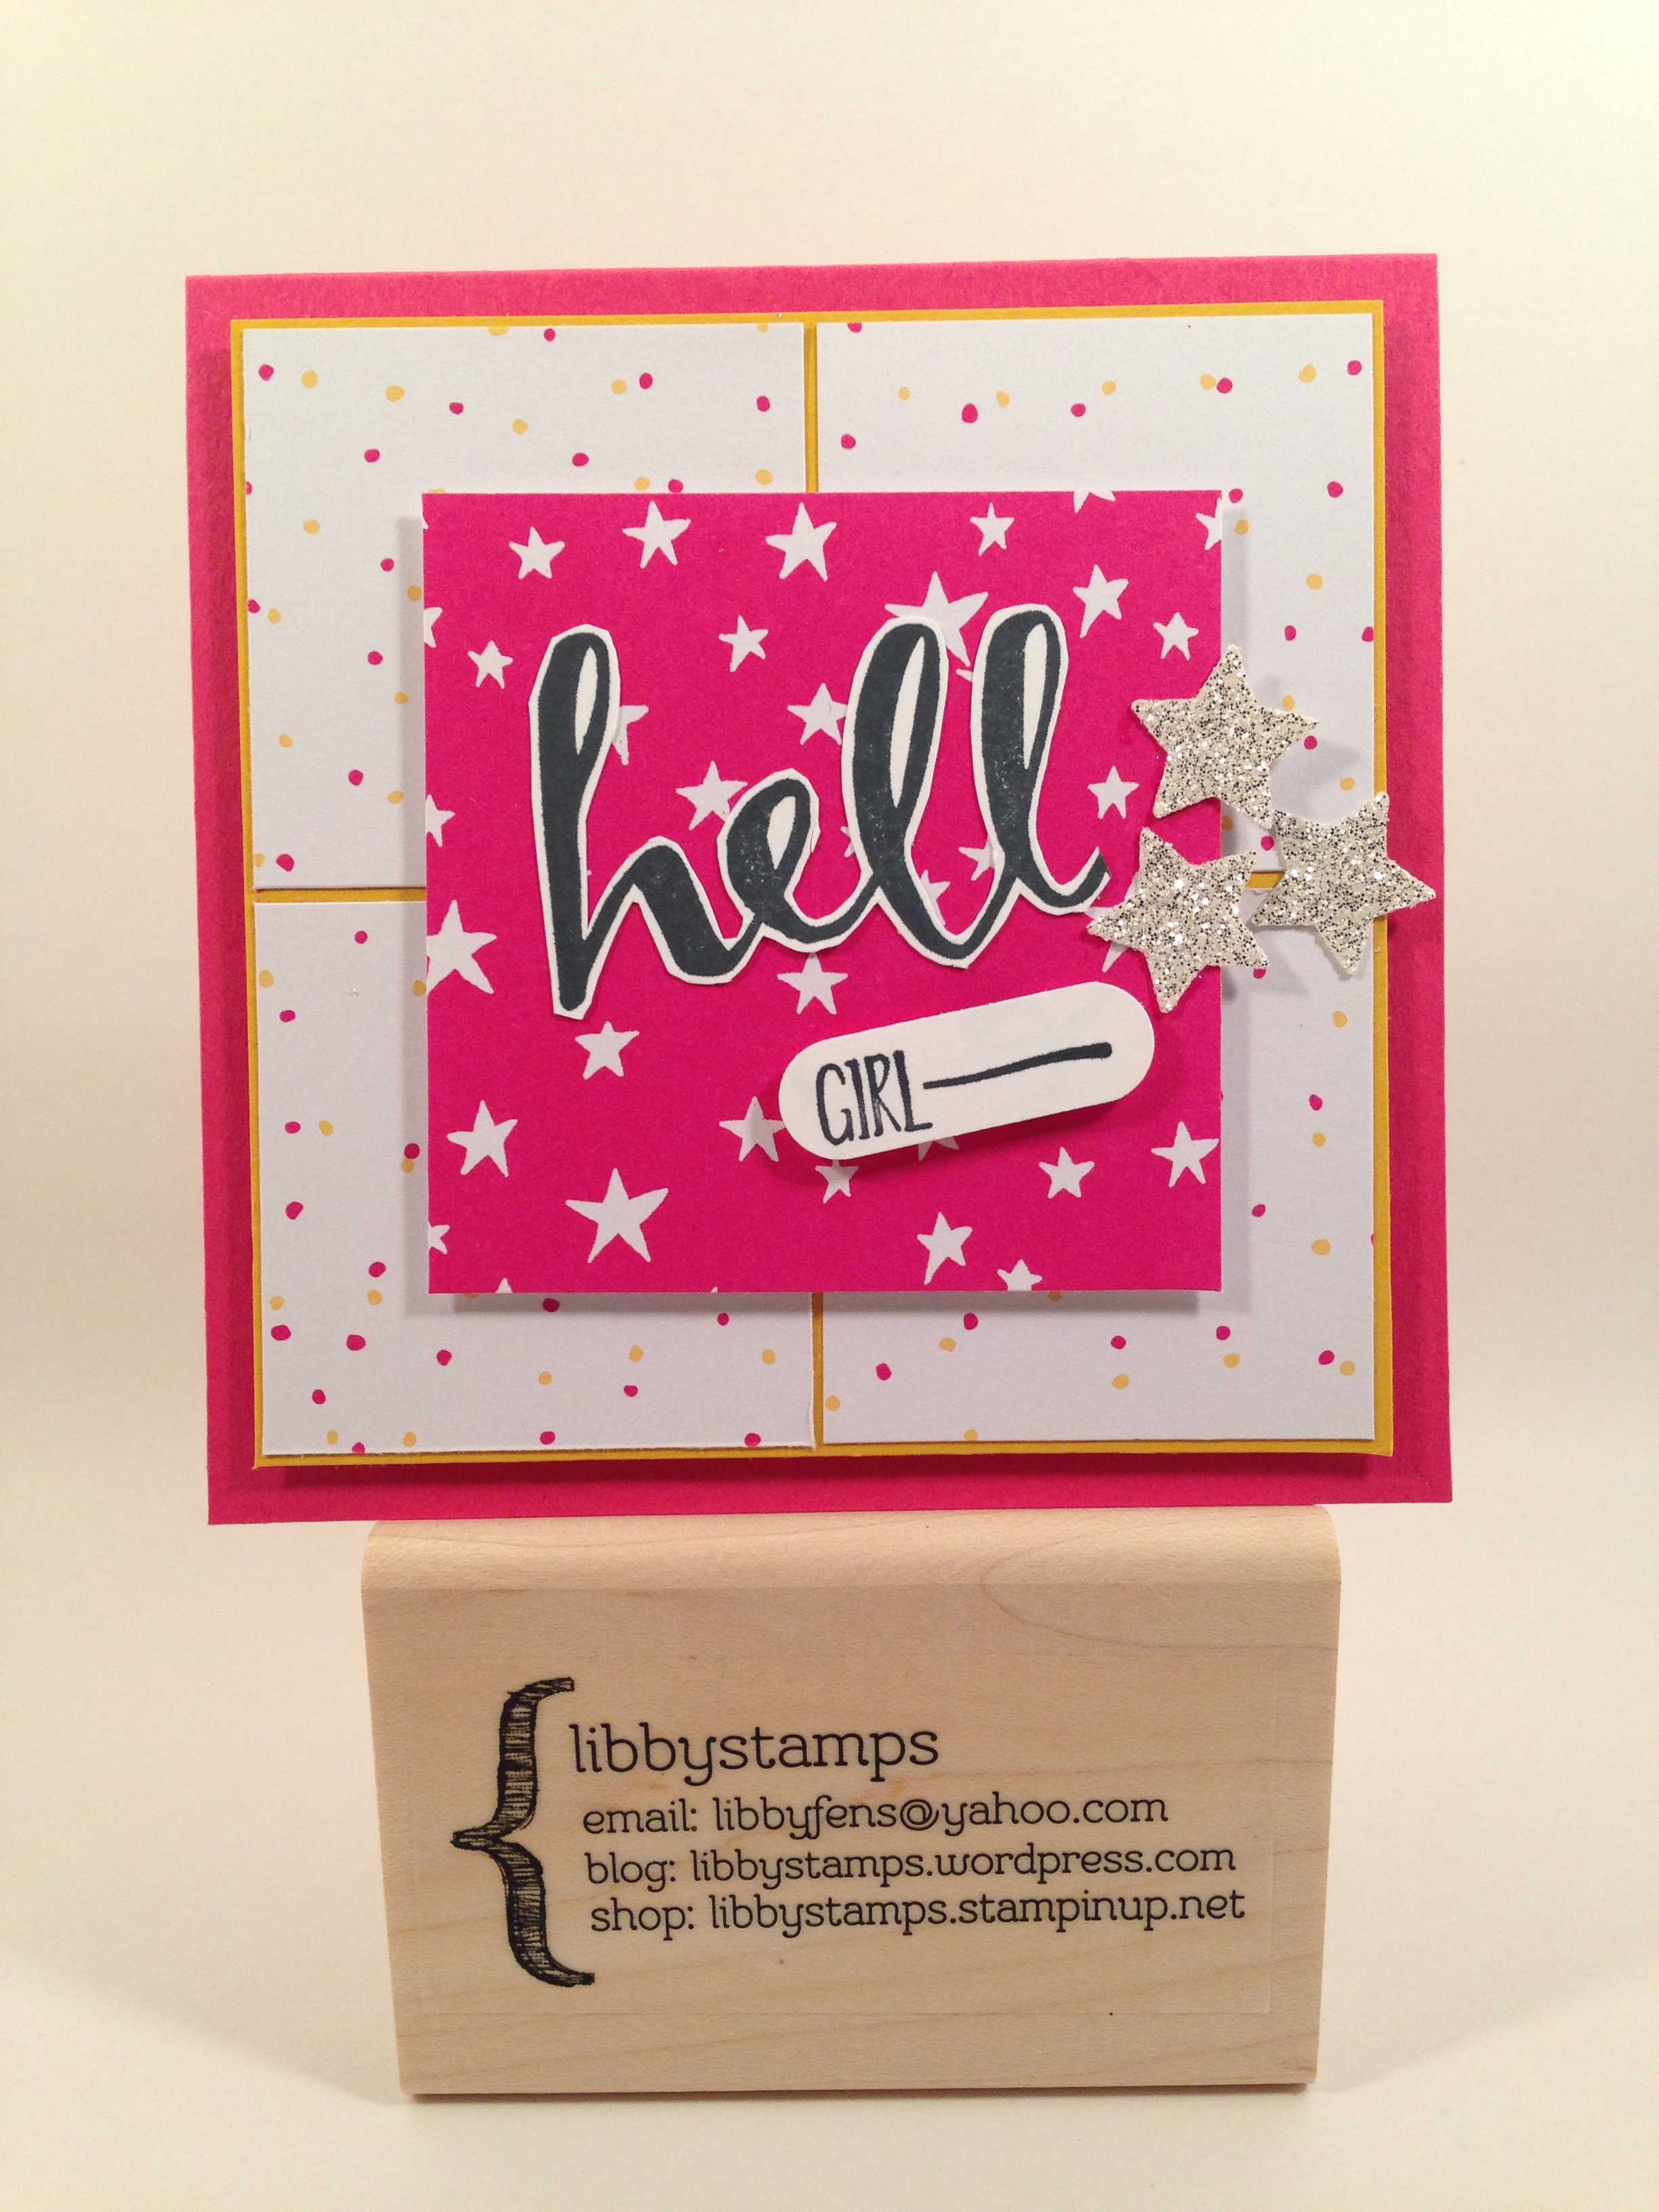 libbystamps, Stampin Up, WWC53, PP280, Hello, It's My Party DSP, Word Window Punch, Silver Glimmer Paper, Sale-a-bration 2016